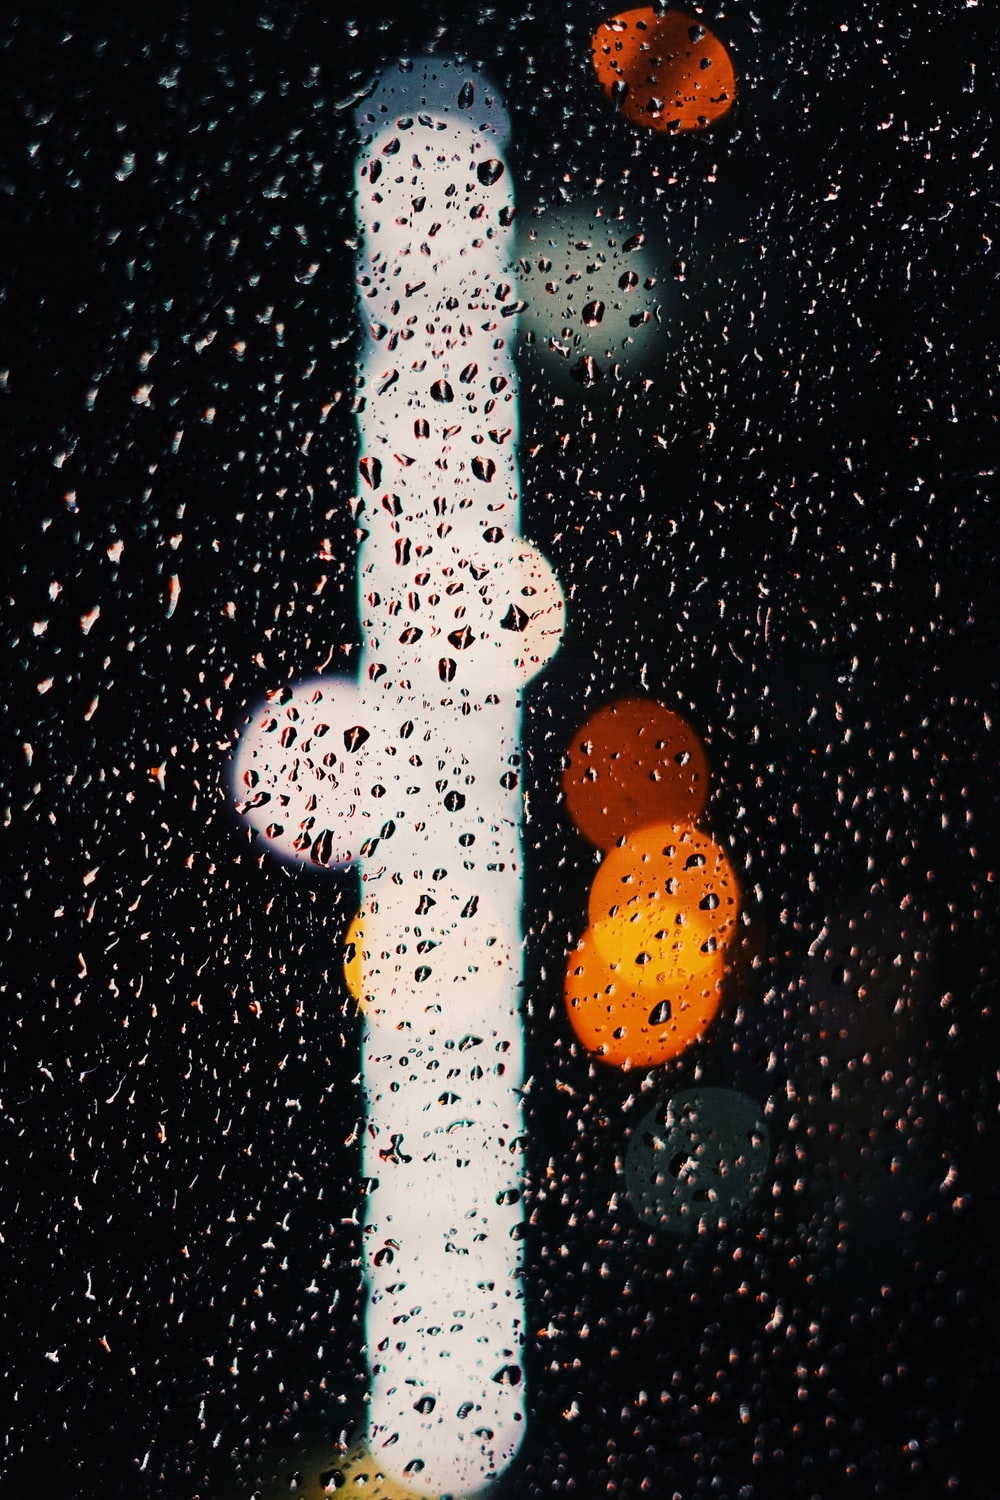 bokeh photography of water droplets